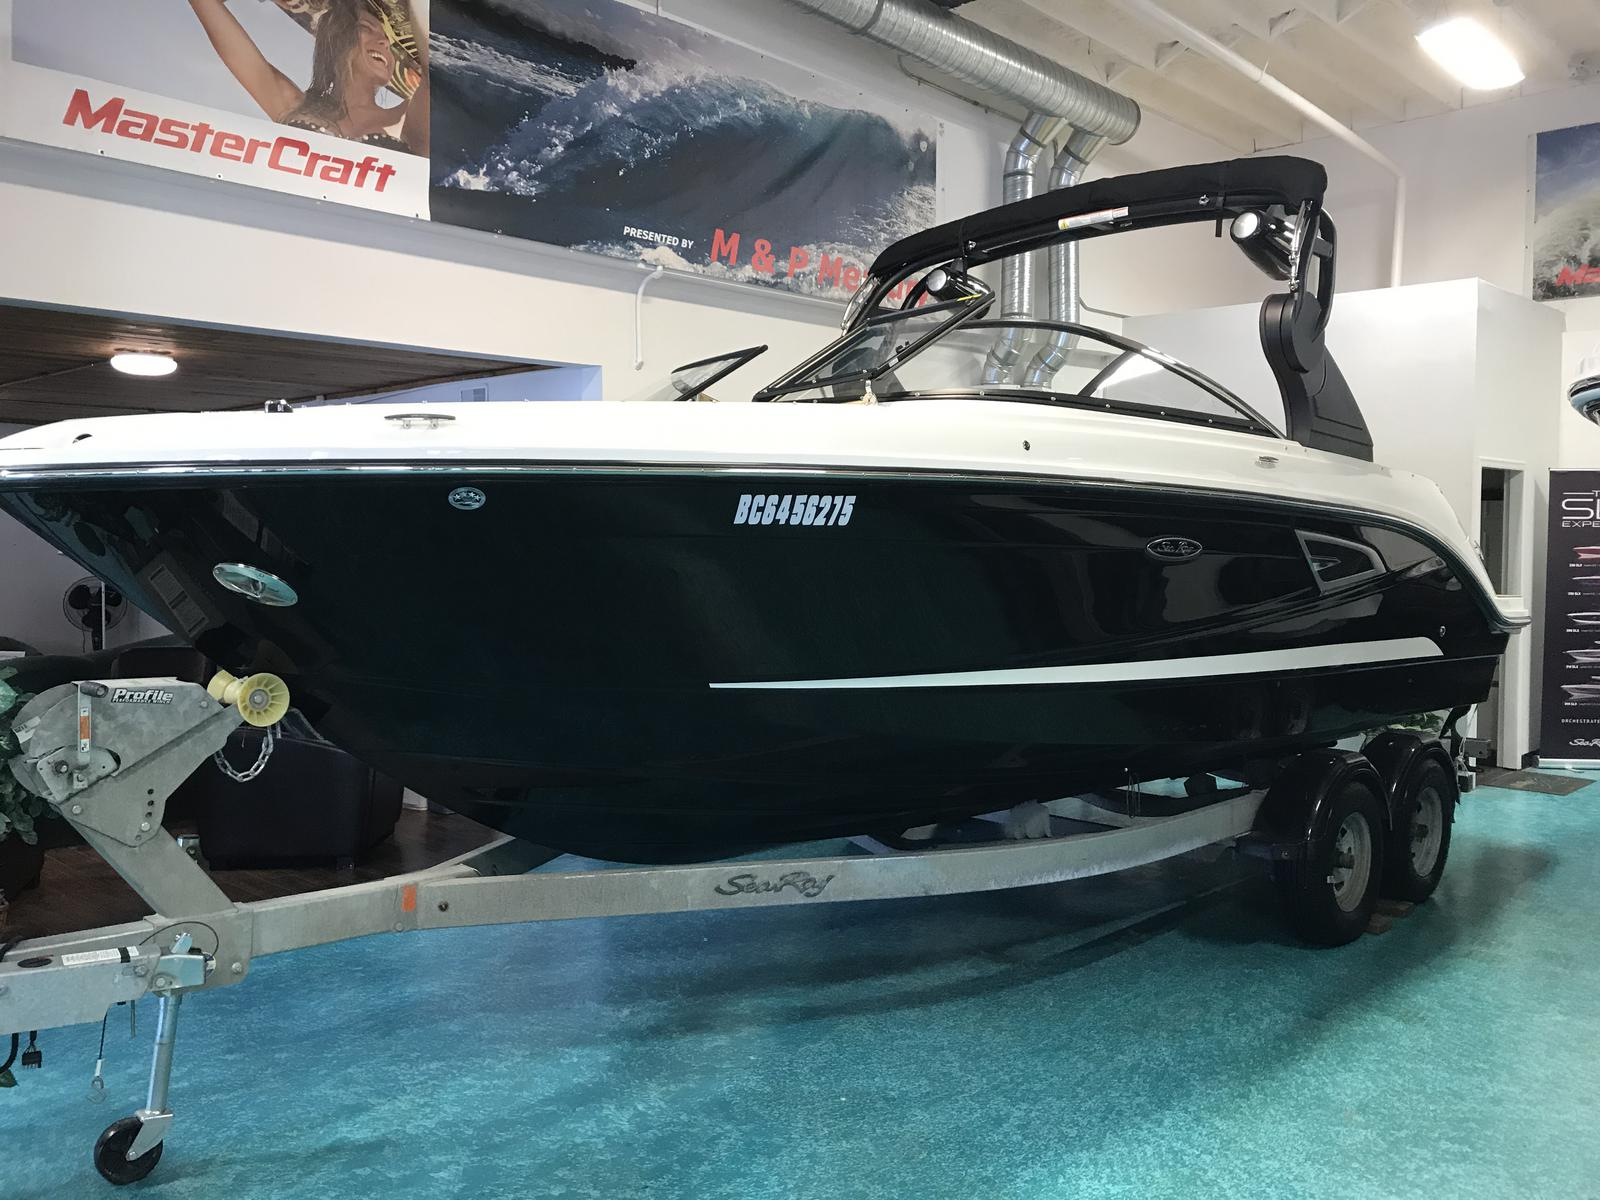 2019 Sea Ray boat for sale, model of the boat is SLX 230 & Image # 1 of 6